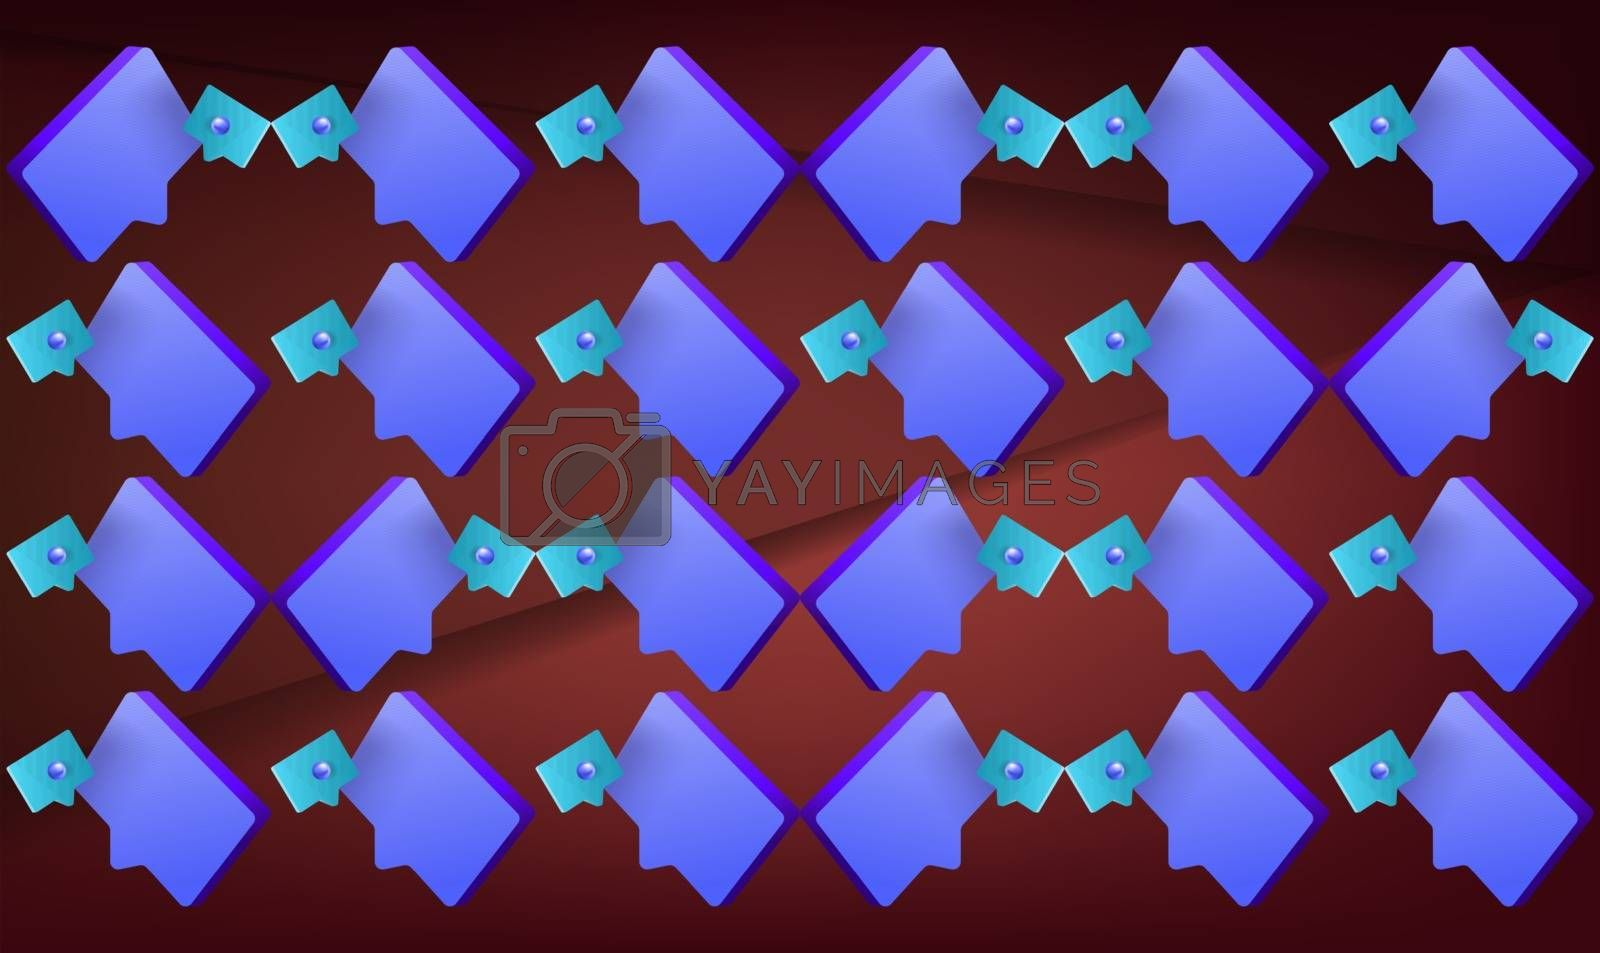 digital textile design of chat objects on abstract background